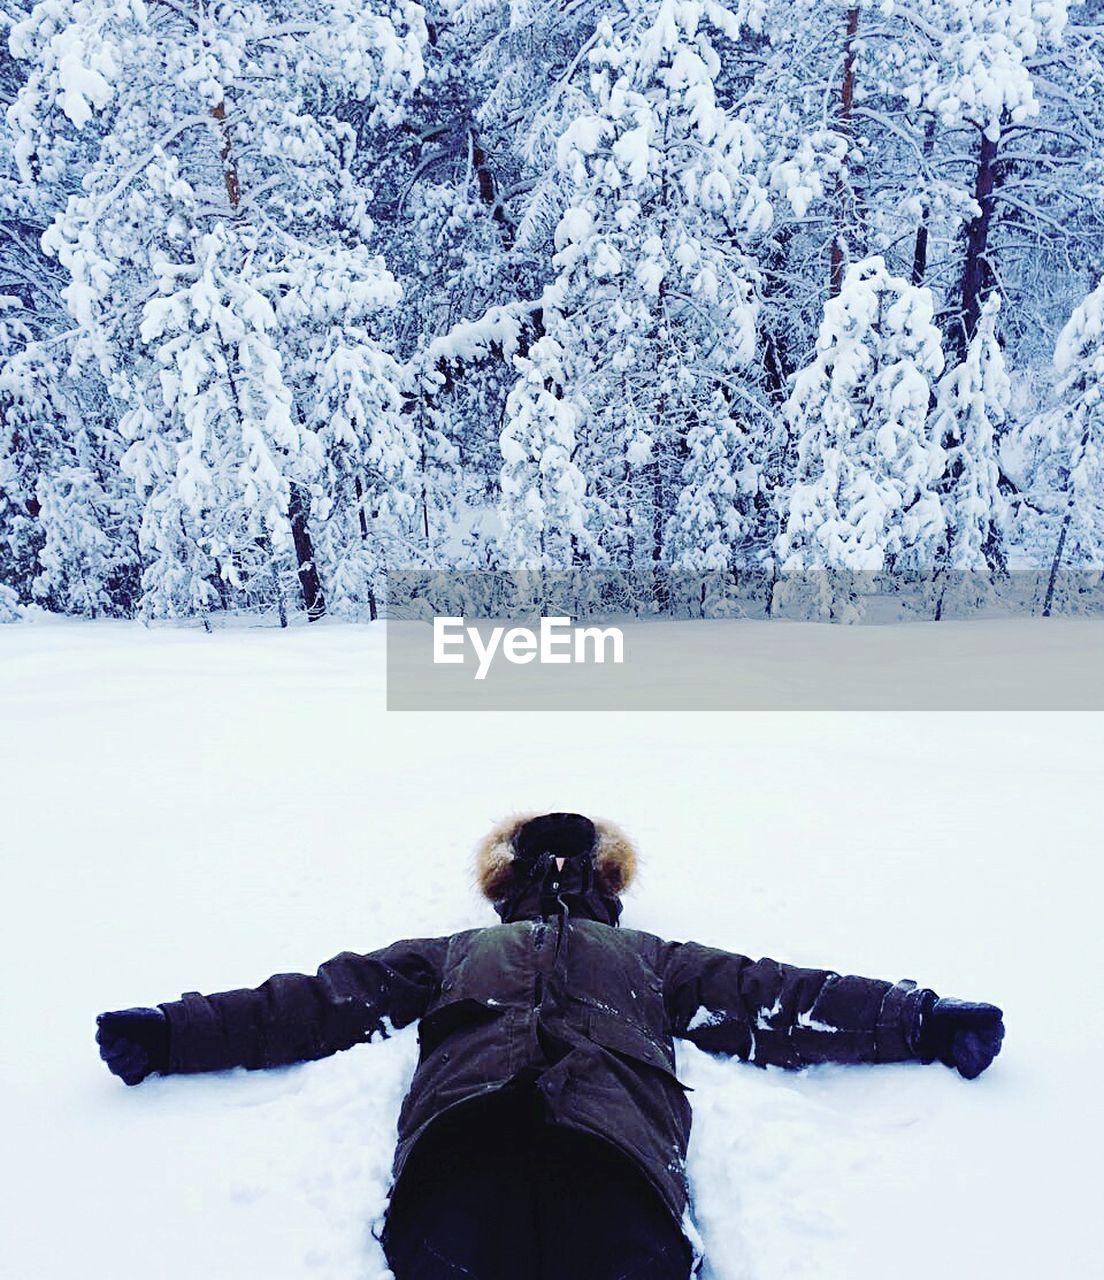 Person lying on snow covered landscape